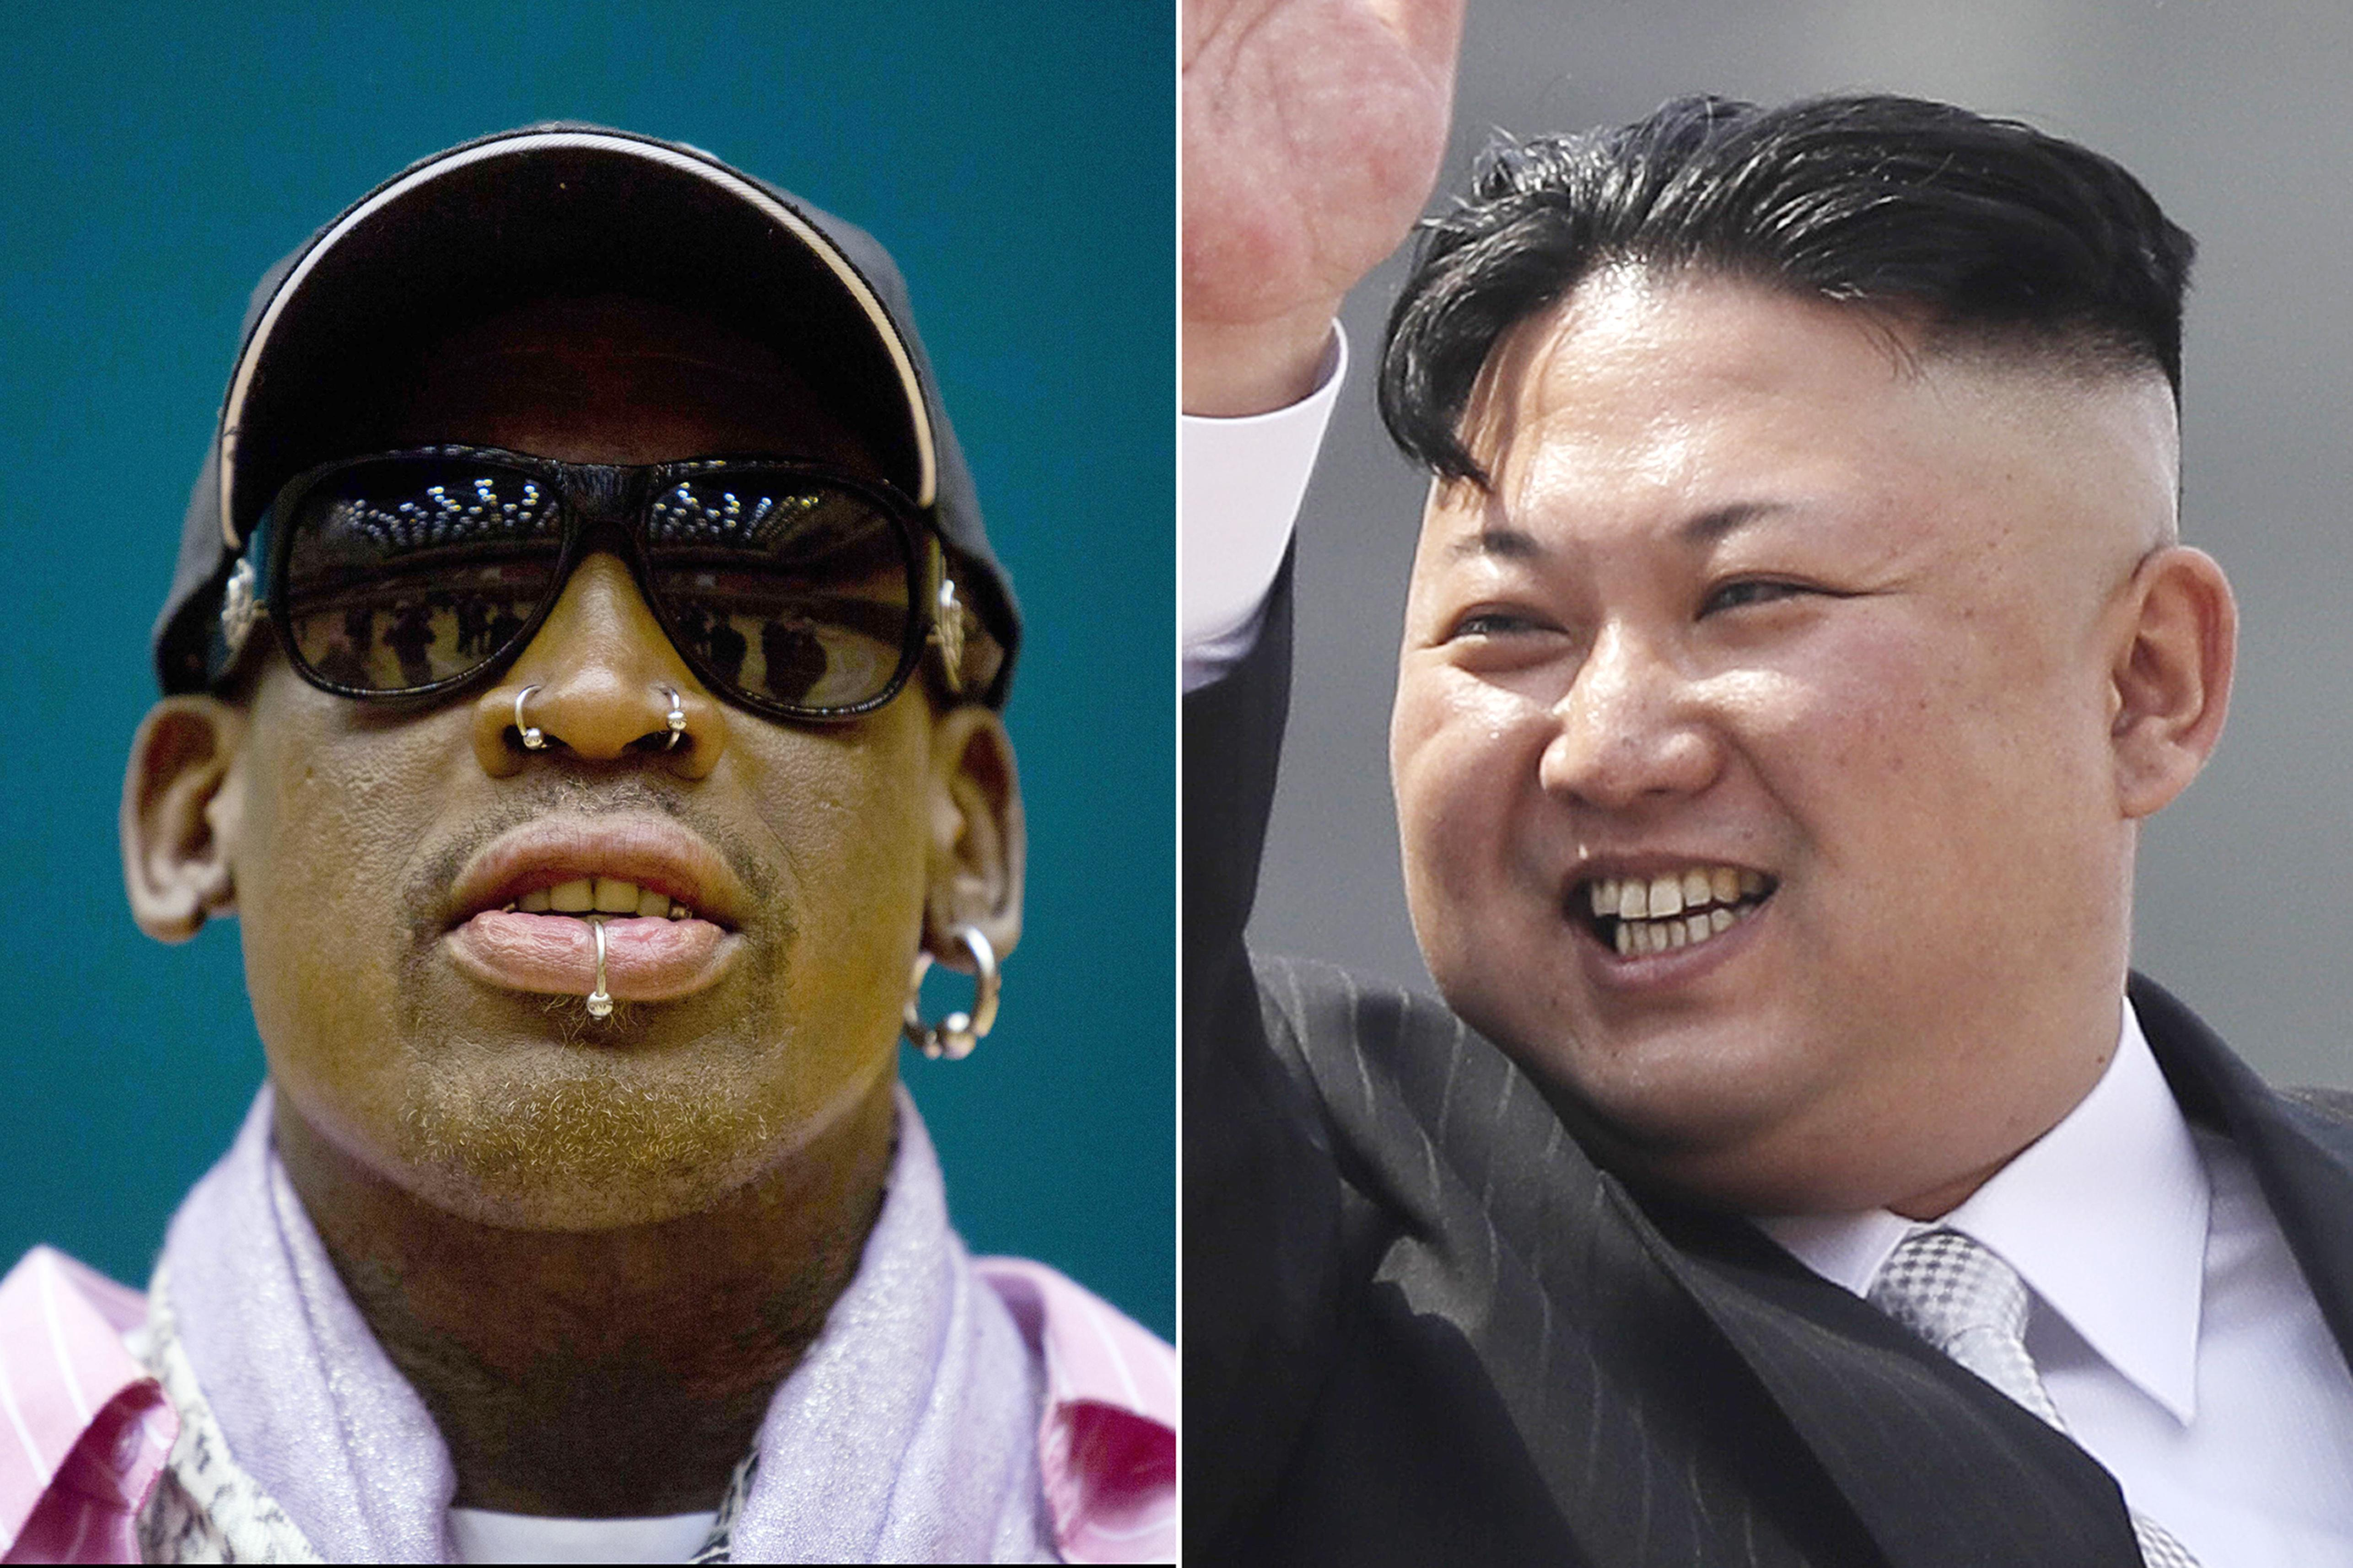 Dennis Rodman: 'Kim Jong-un will be in America in 18 to 24 months, I guarantee you'